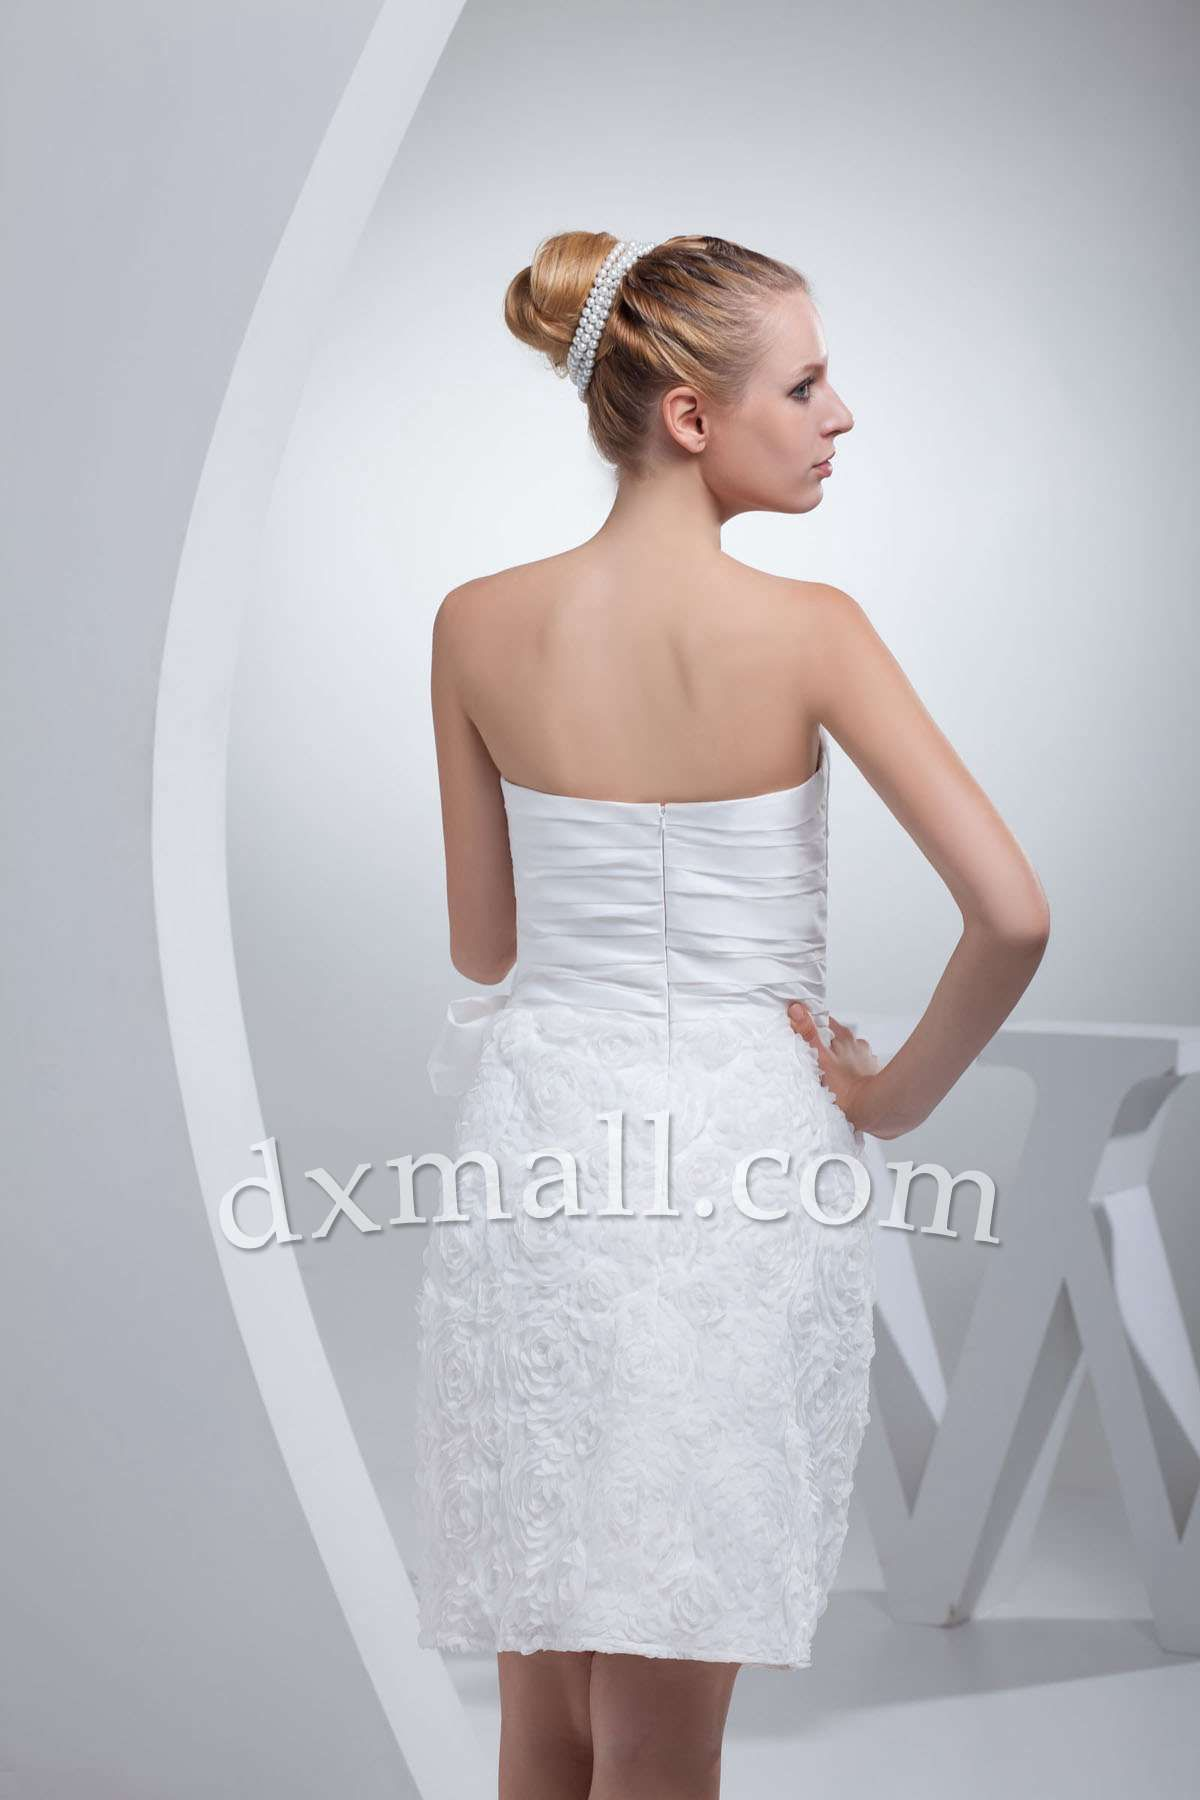 Mini white wedding dress  Aline Wedding Dresses Strapless ShortMini Lace Taffeta White